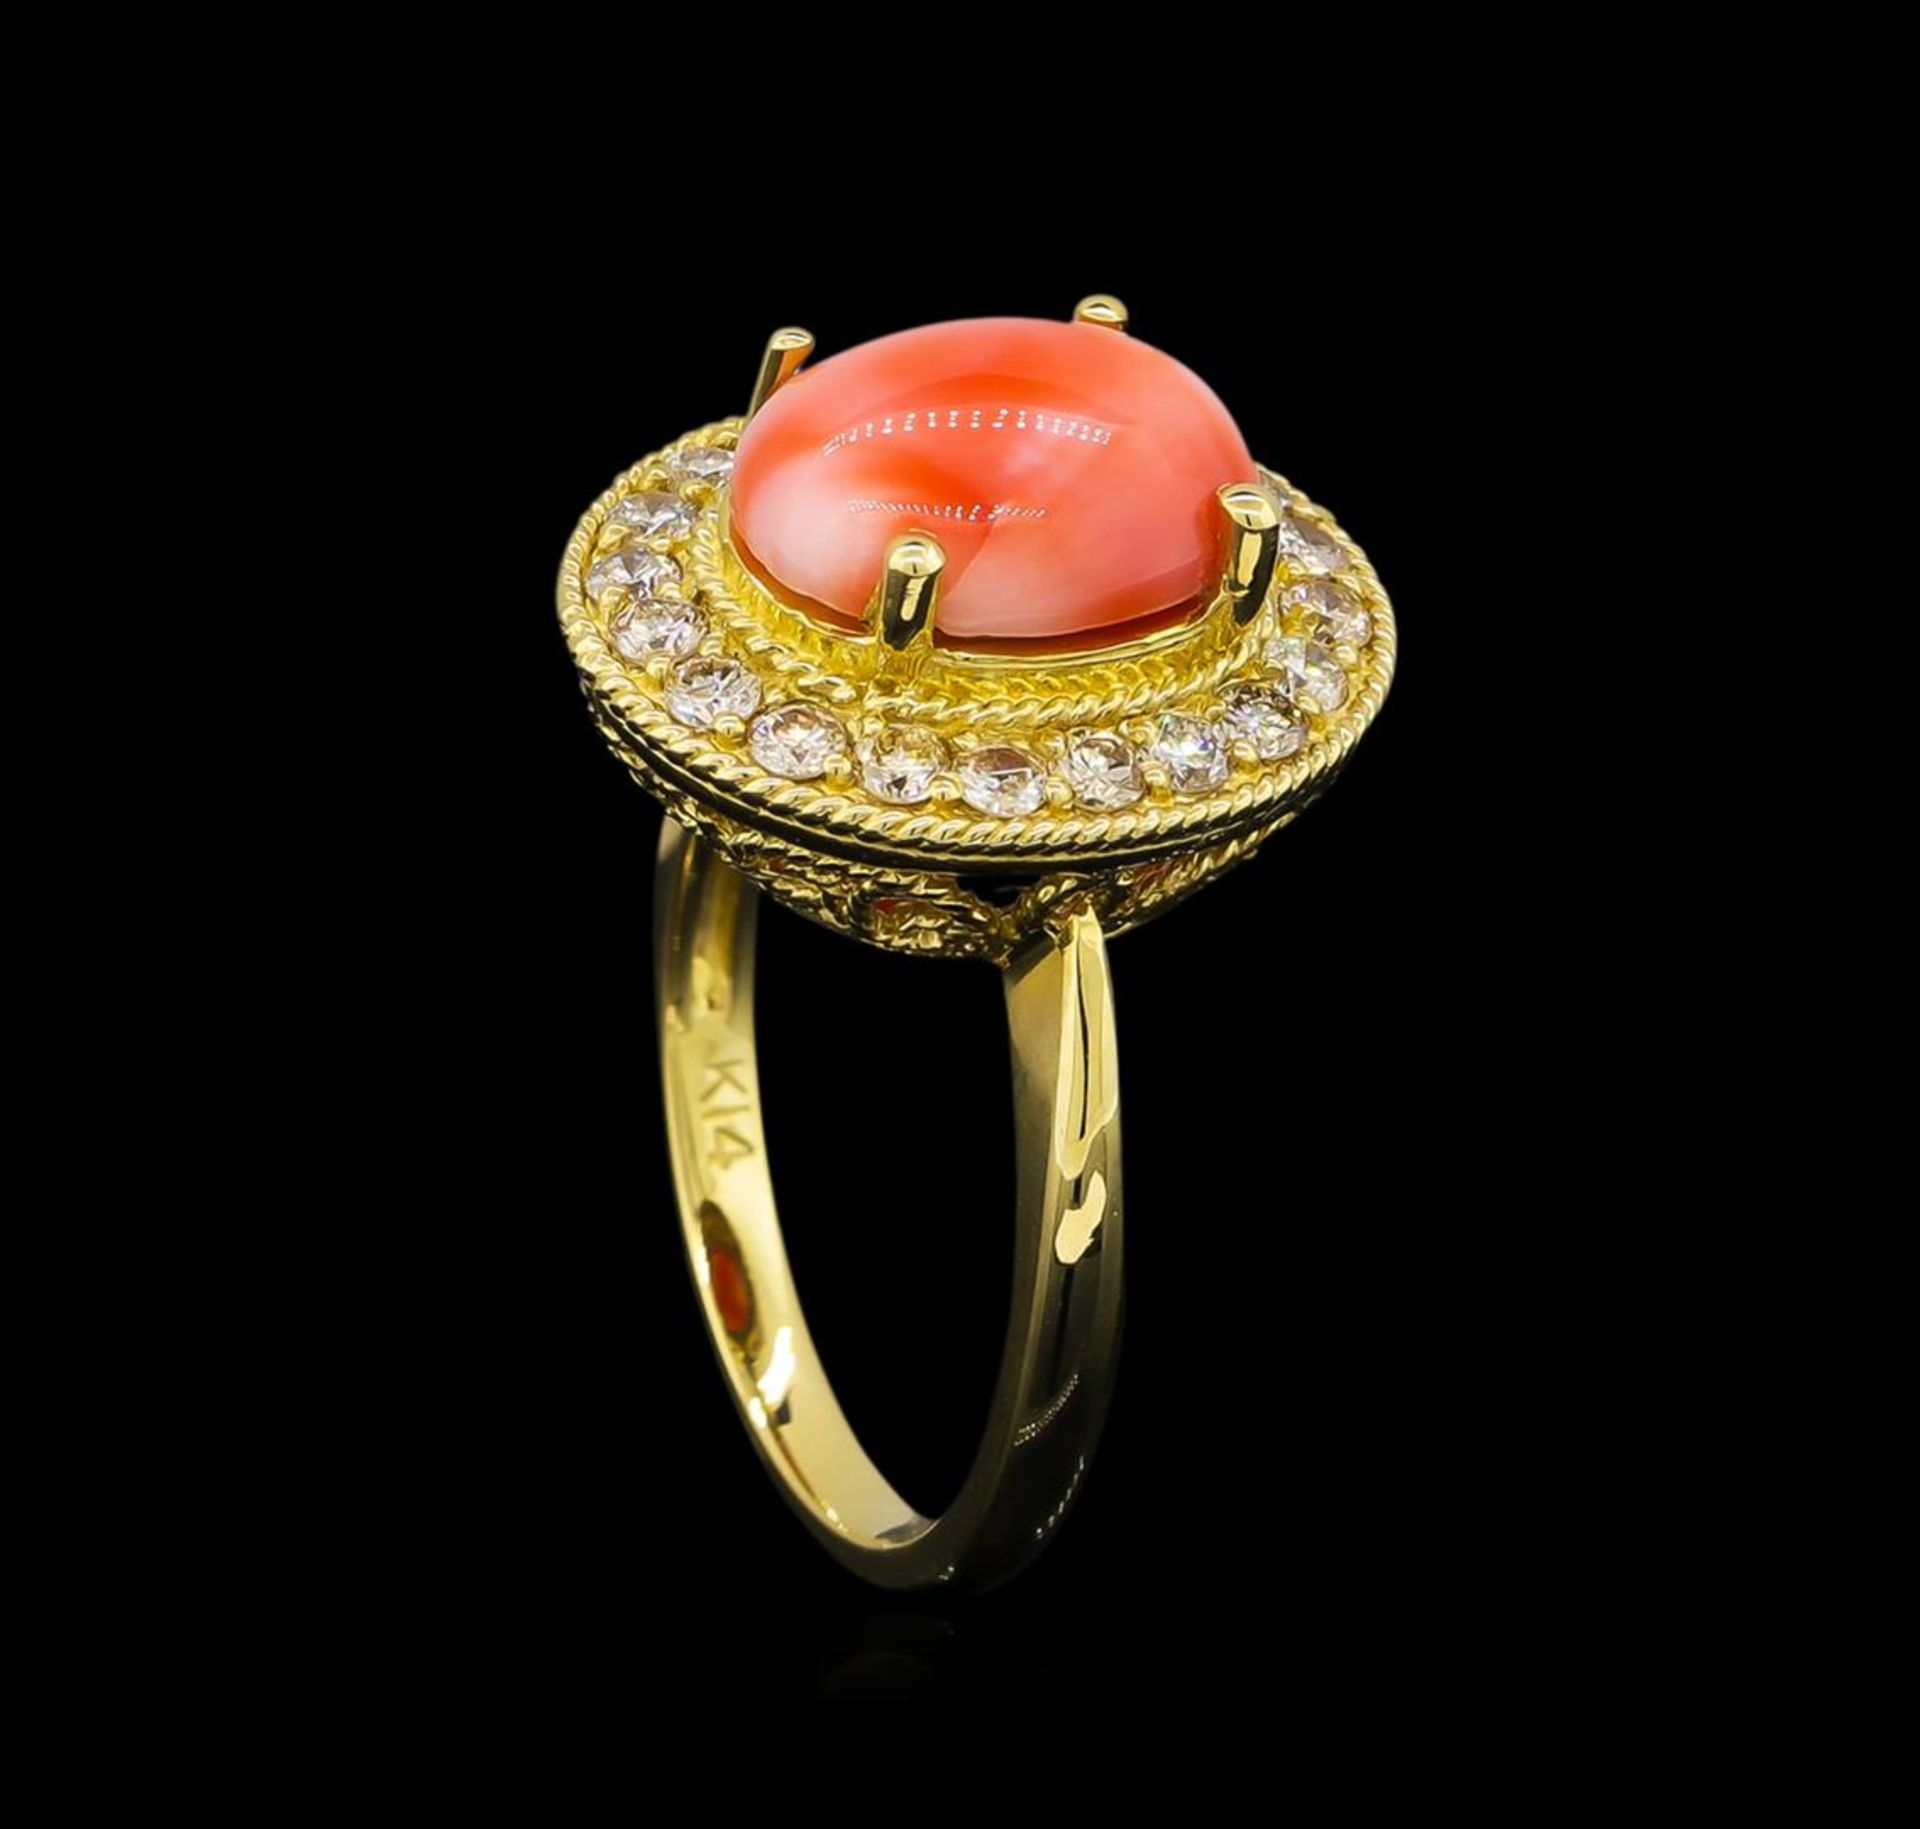 14KT Yellow Gold 3.16 ctw Coral and Diamond Ring - Image 4 of 5